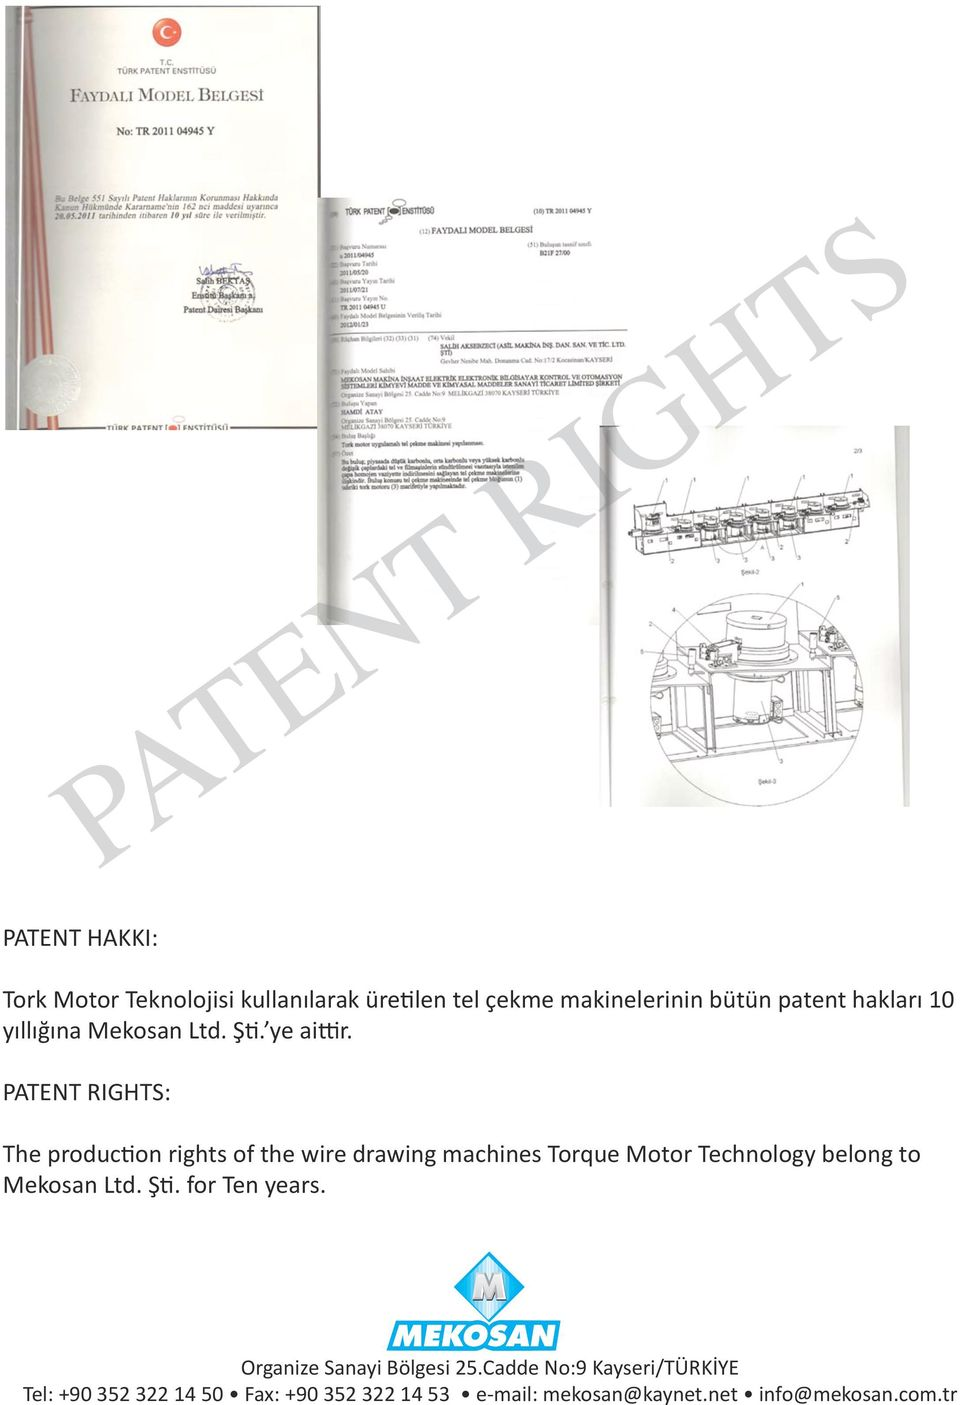 PATENT RIGHTS: The production rights of the wire drawing machines Torque Motor Technology belong to Mekosan